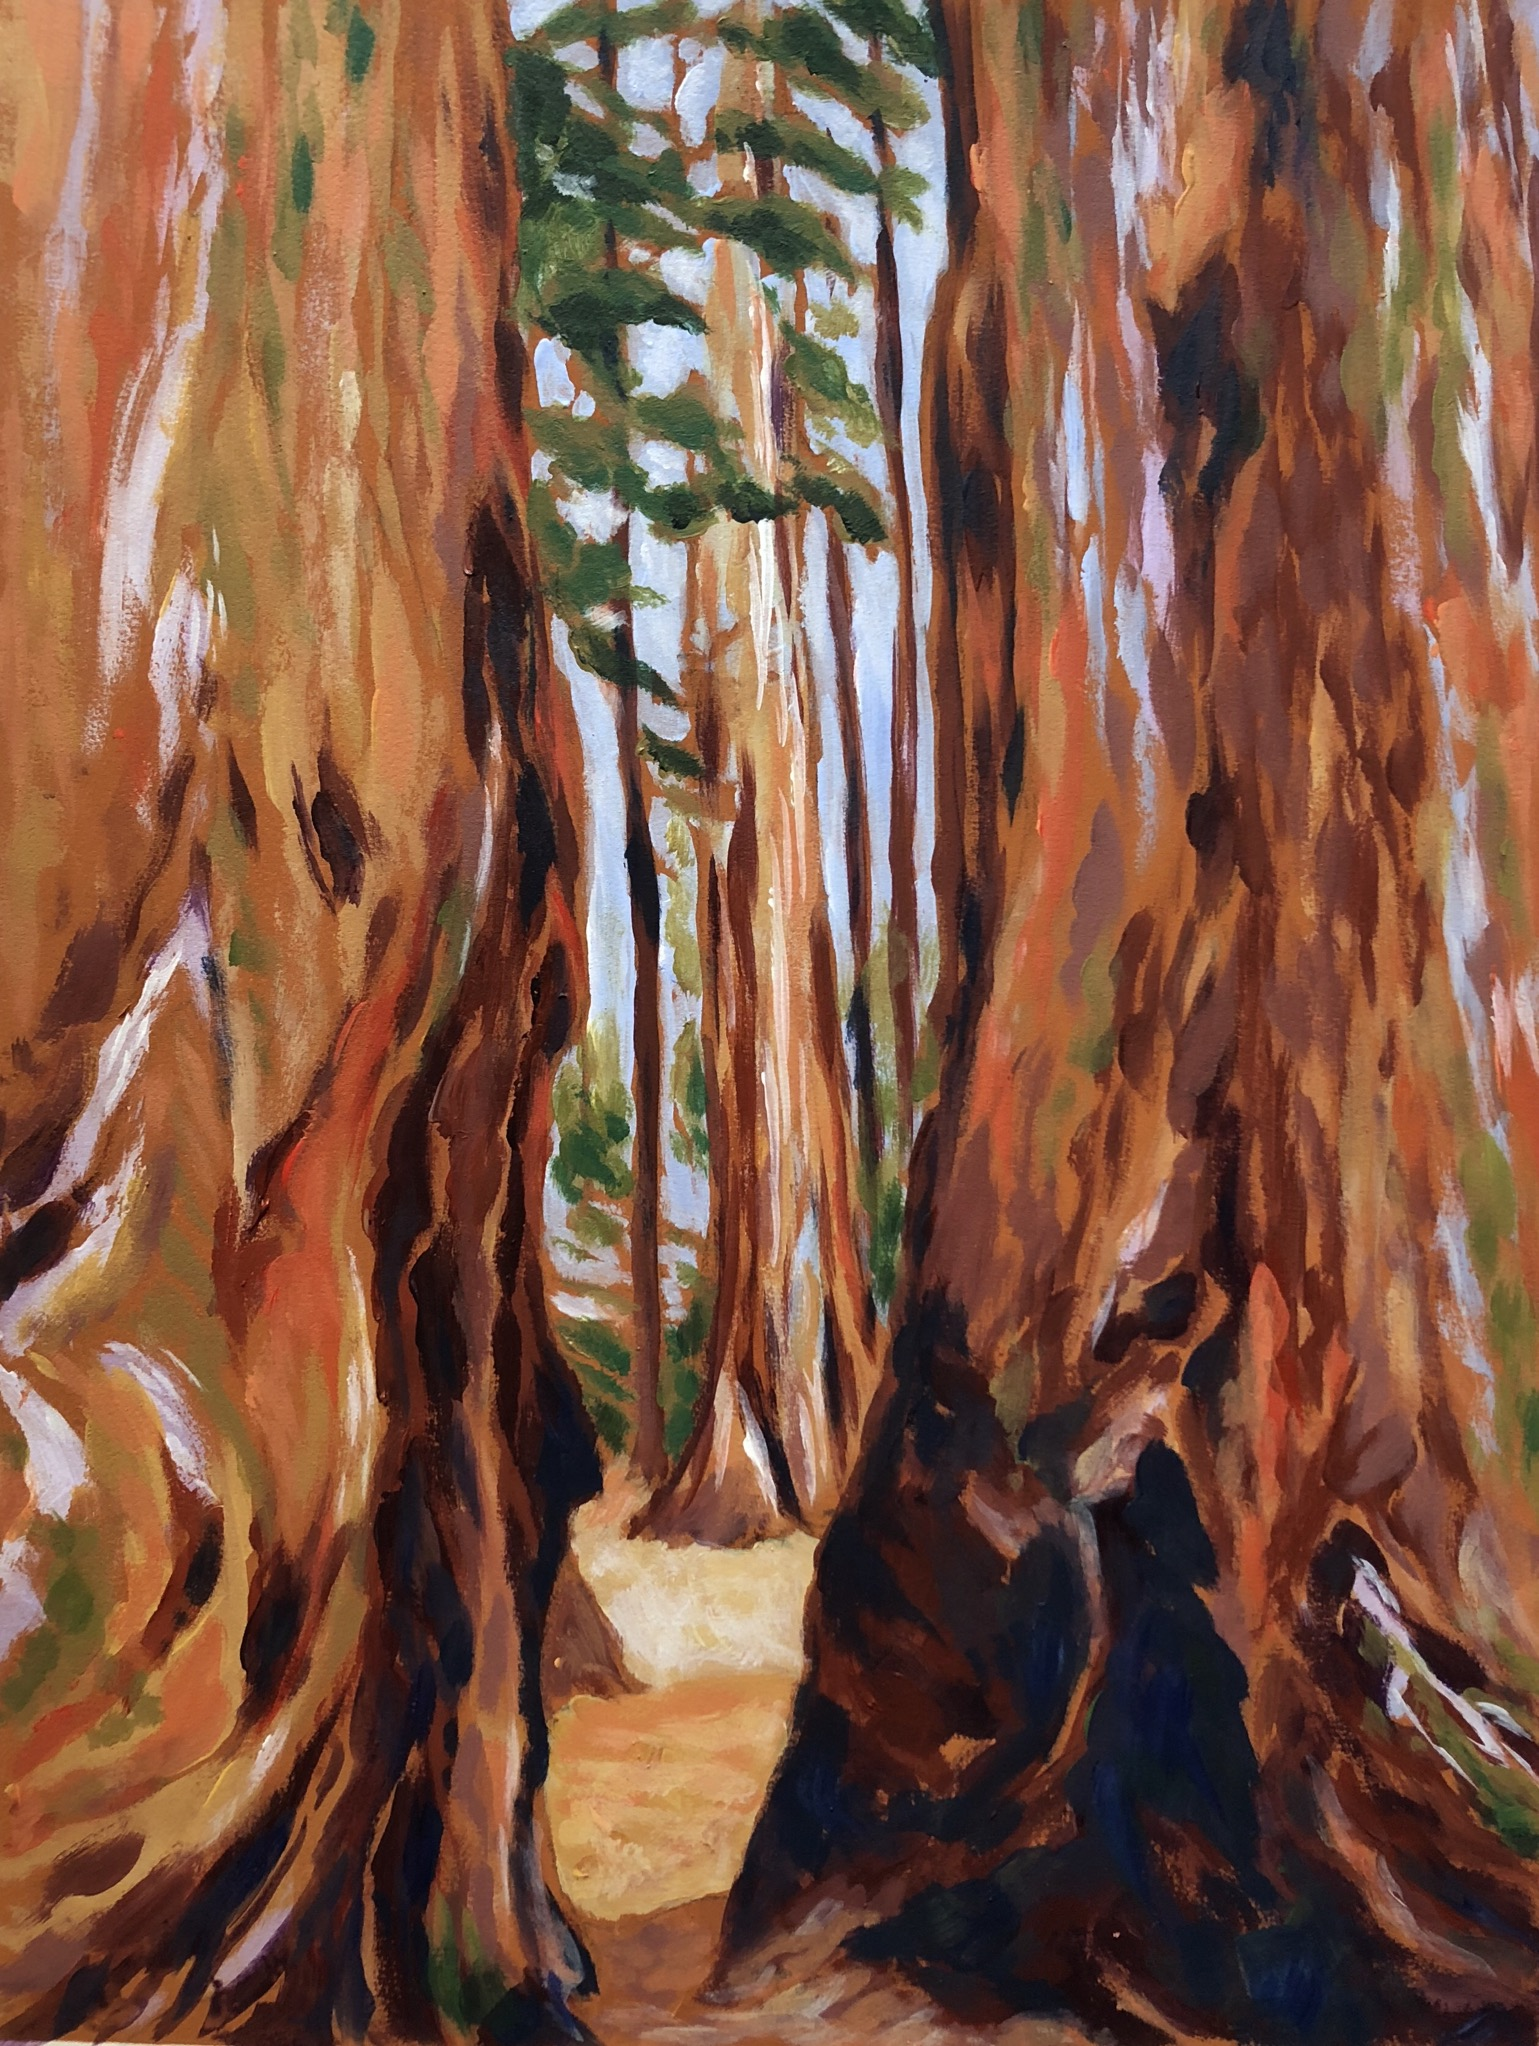 Giant Forest - Sequoia National Park - Acrylic on Colorfix Paper